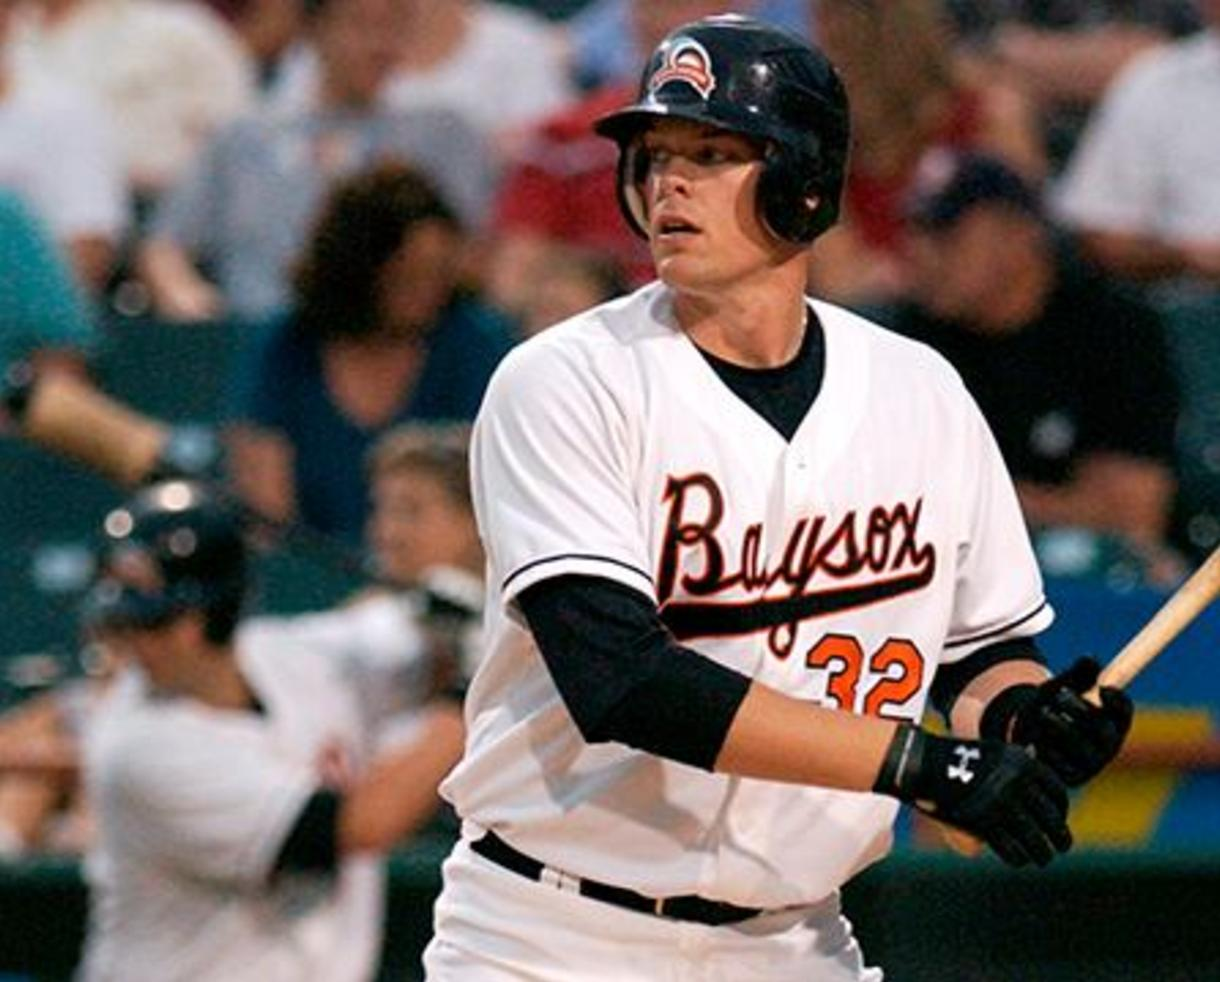 585710868  12 for Bowie Baysox Box Seat and 6 Kids Park Tickets for Rides and Games -  June 21st-26th ( 20 Value - 40% Off)